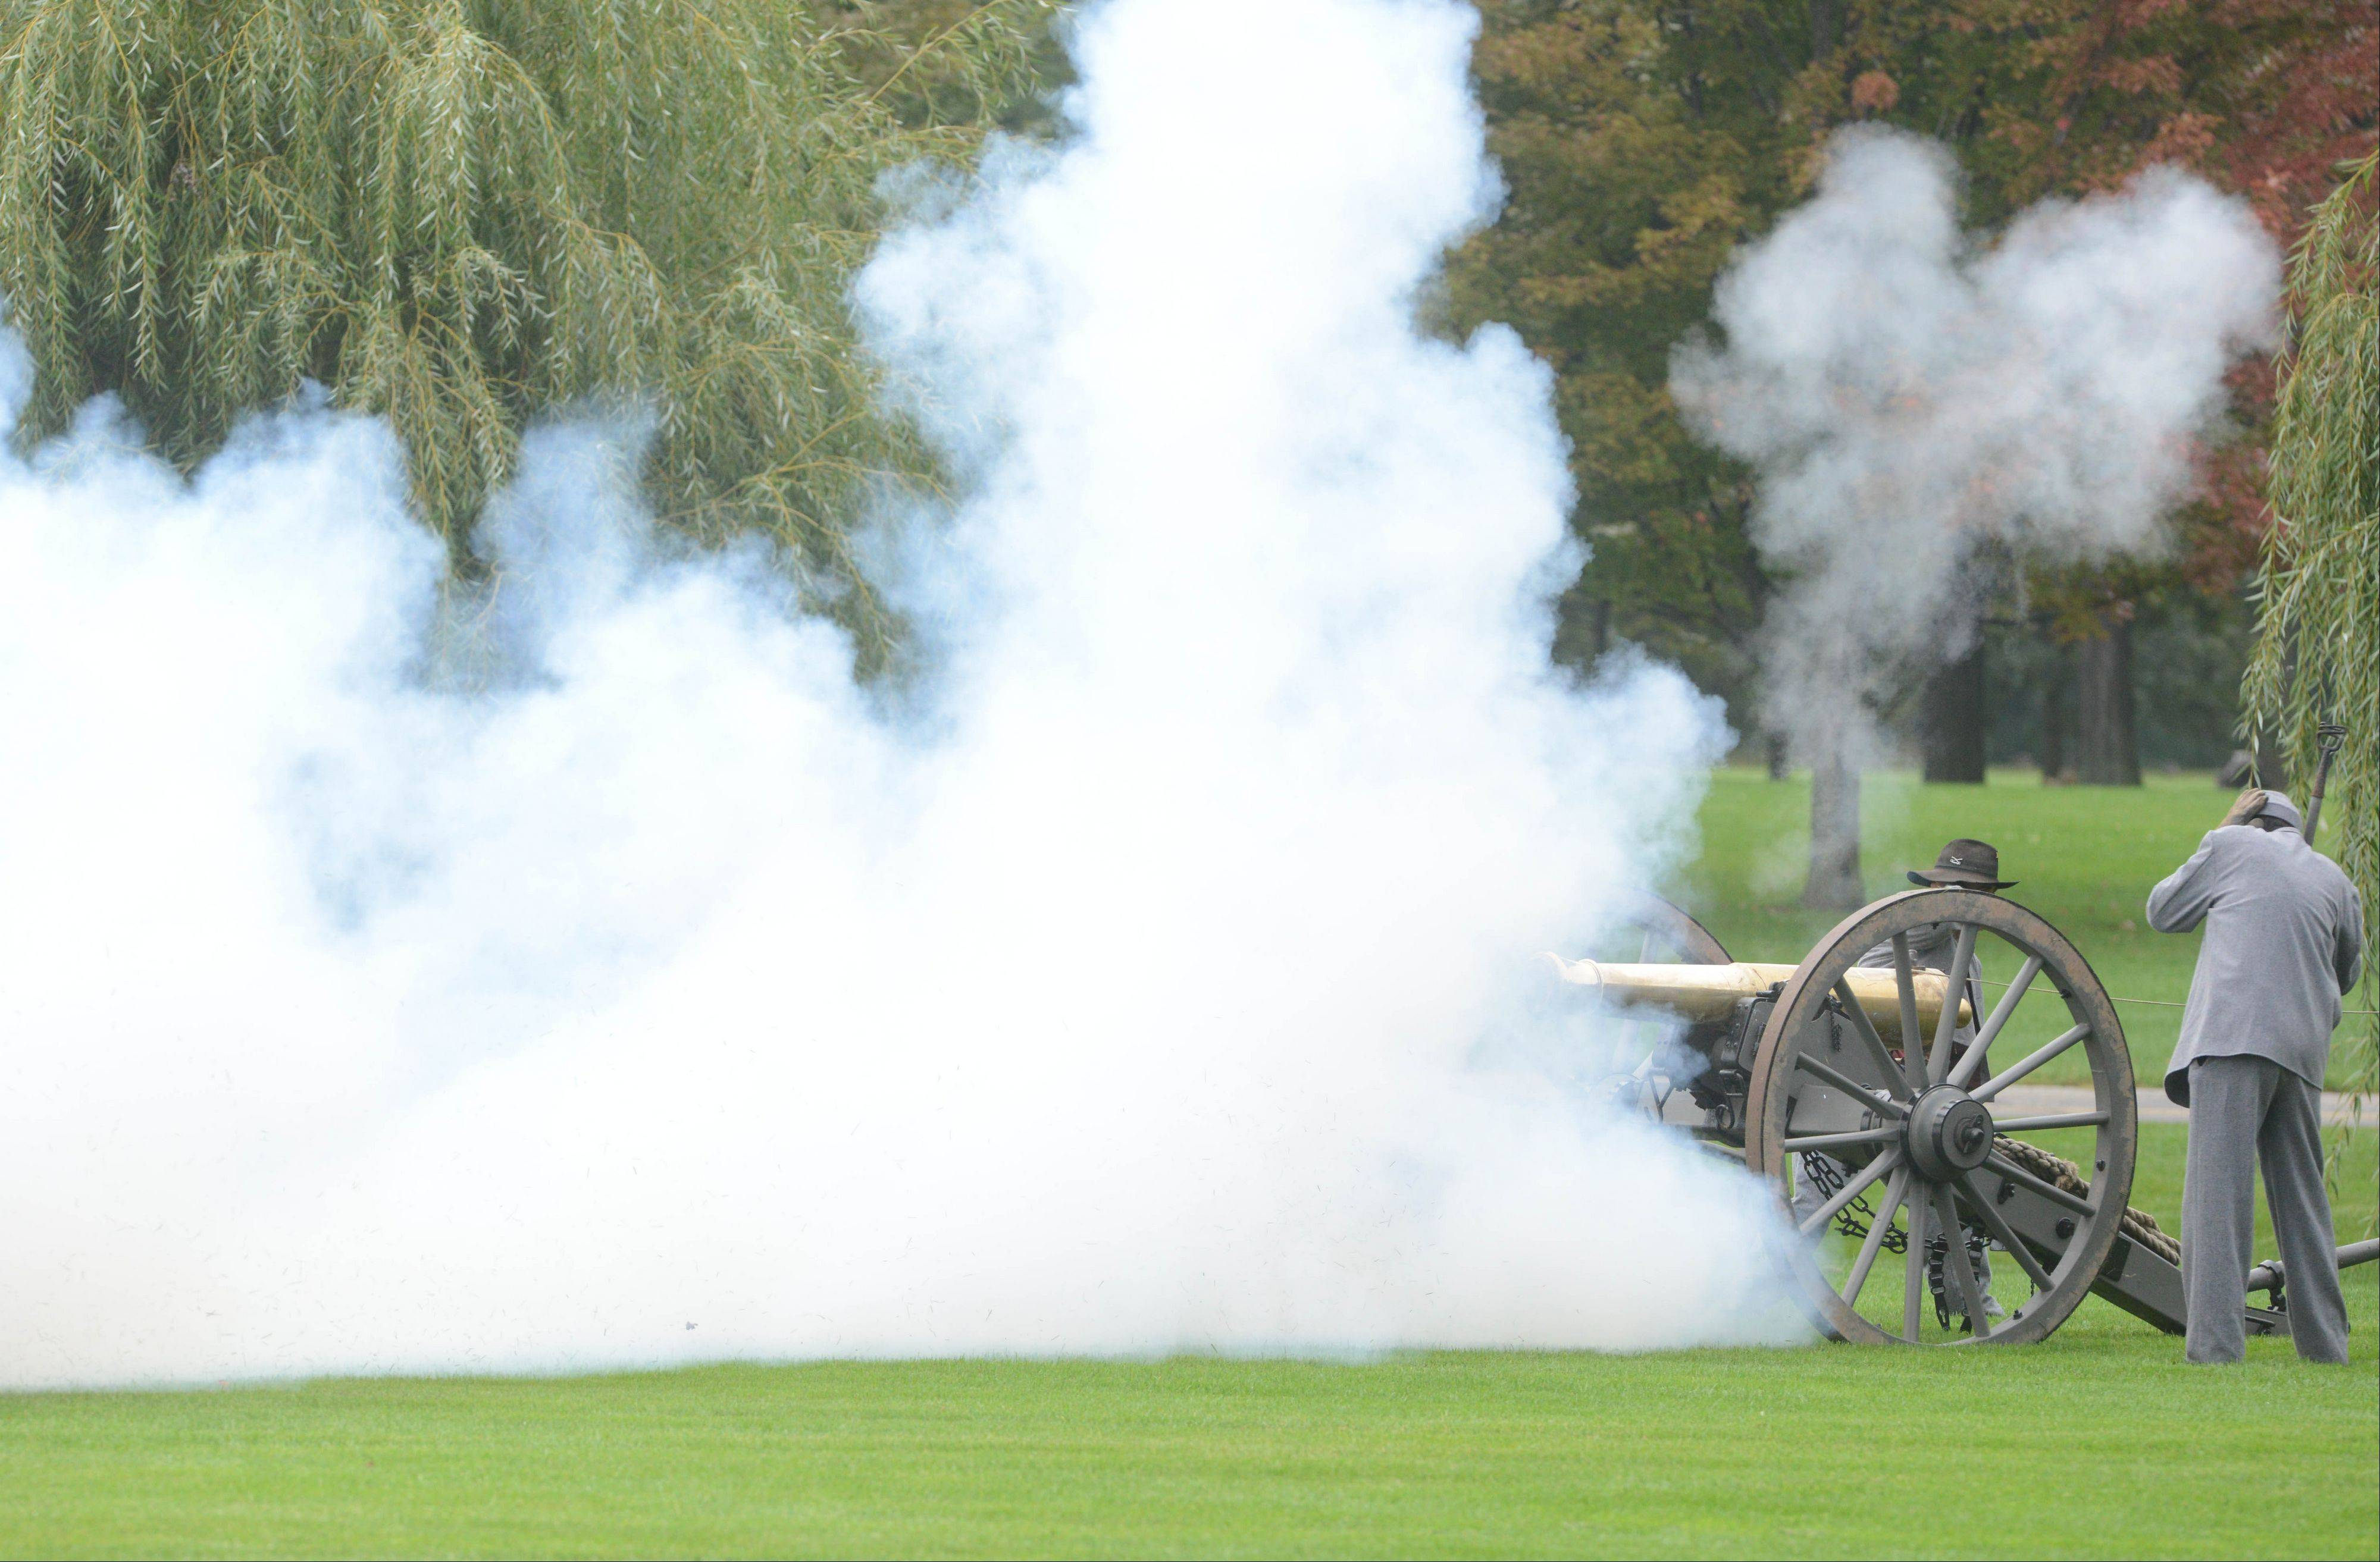 Cantigny Park in Wheaton played host to a Civil War re-enactment from 10 a.m. to 4 p.m. Saturday and Sunday. Living History actors portraying soldiers and civilians interact with visitors. Actors portraying Abraham and Mary Todd Lincoln and Harriet Tubman were on hand.